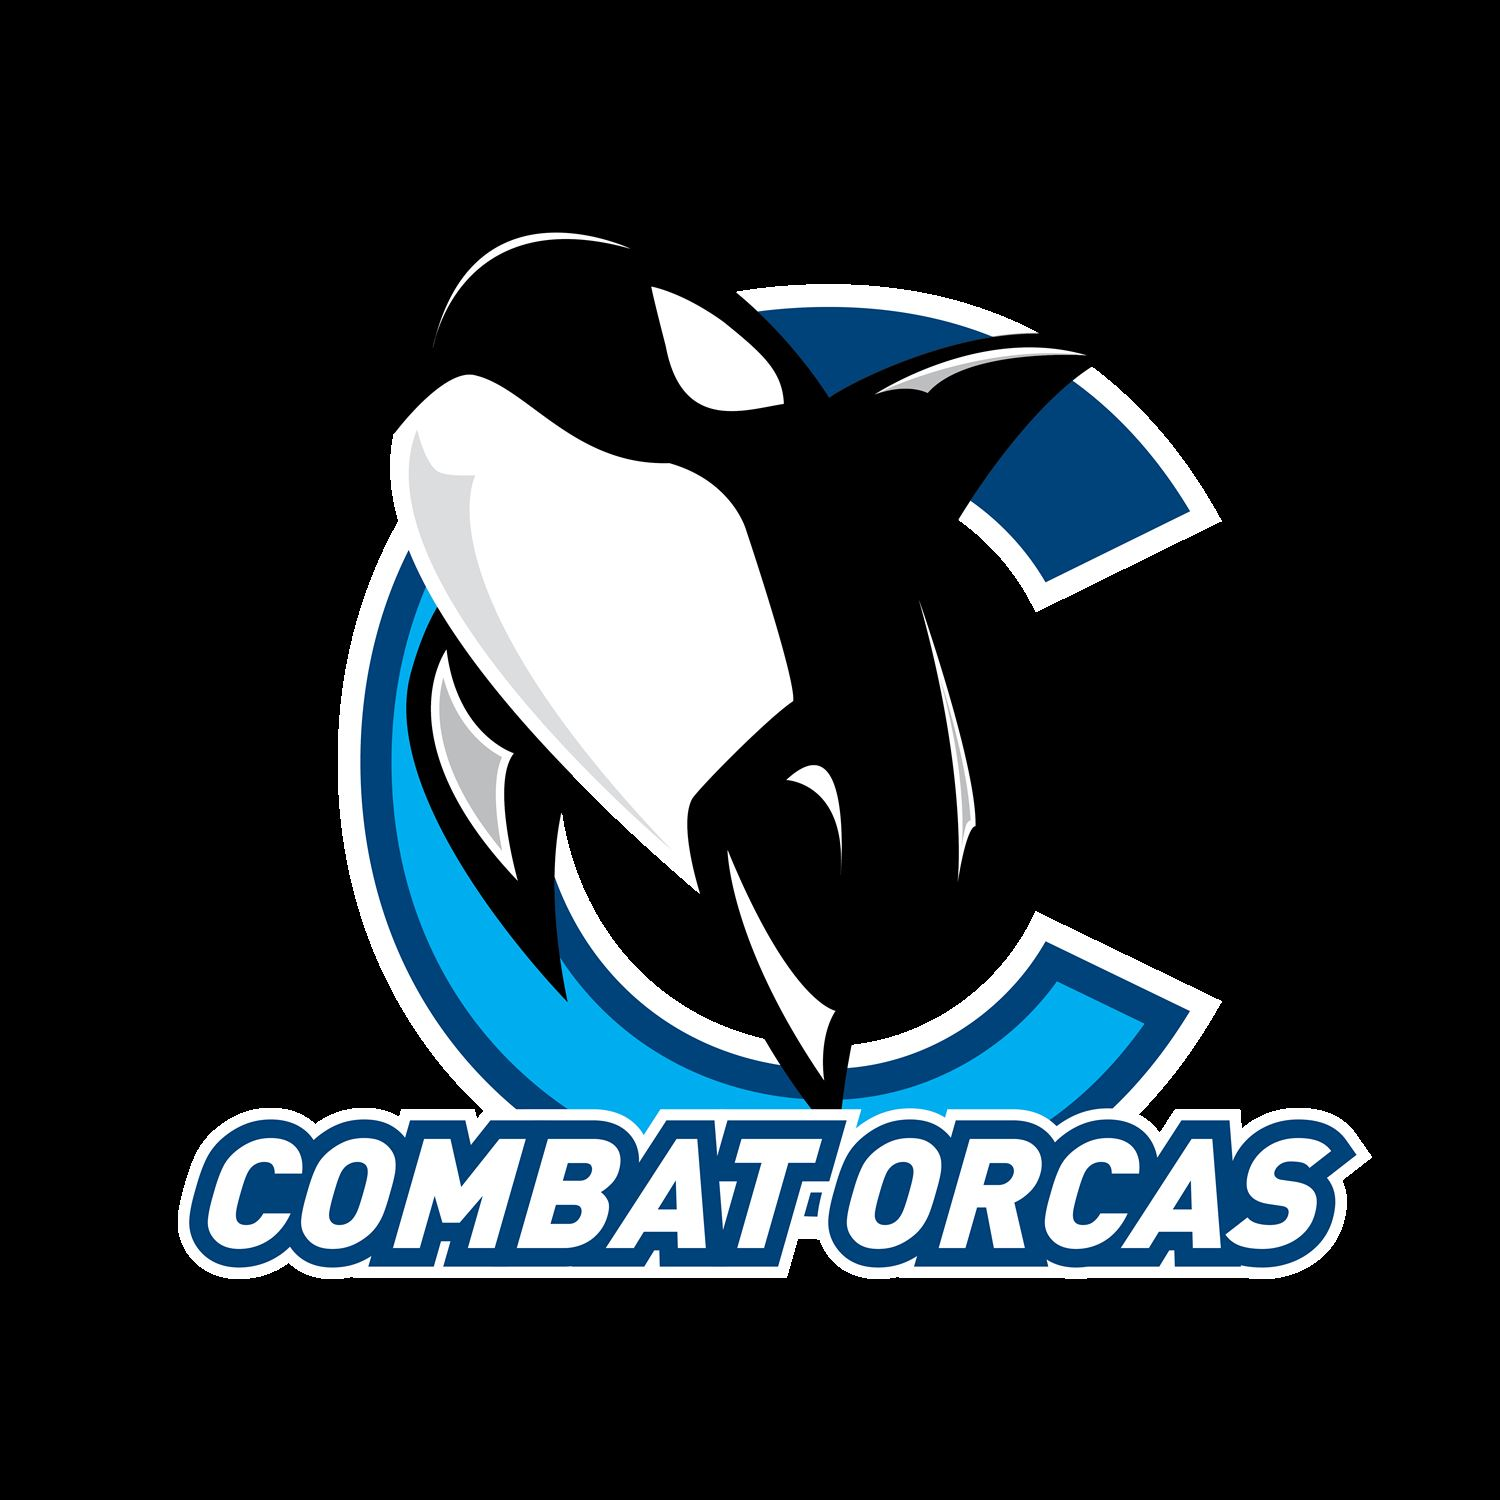 Hong Kong Combat Orcas American Football Team - Hong Kong Combat Orcas American Football Team